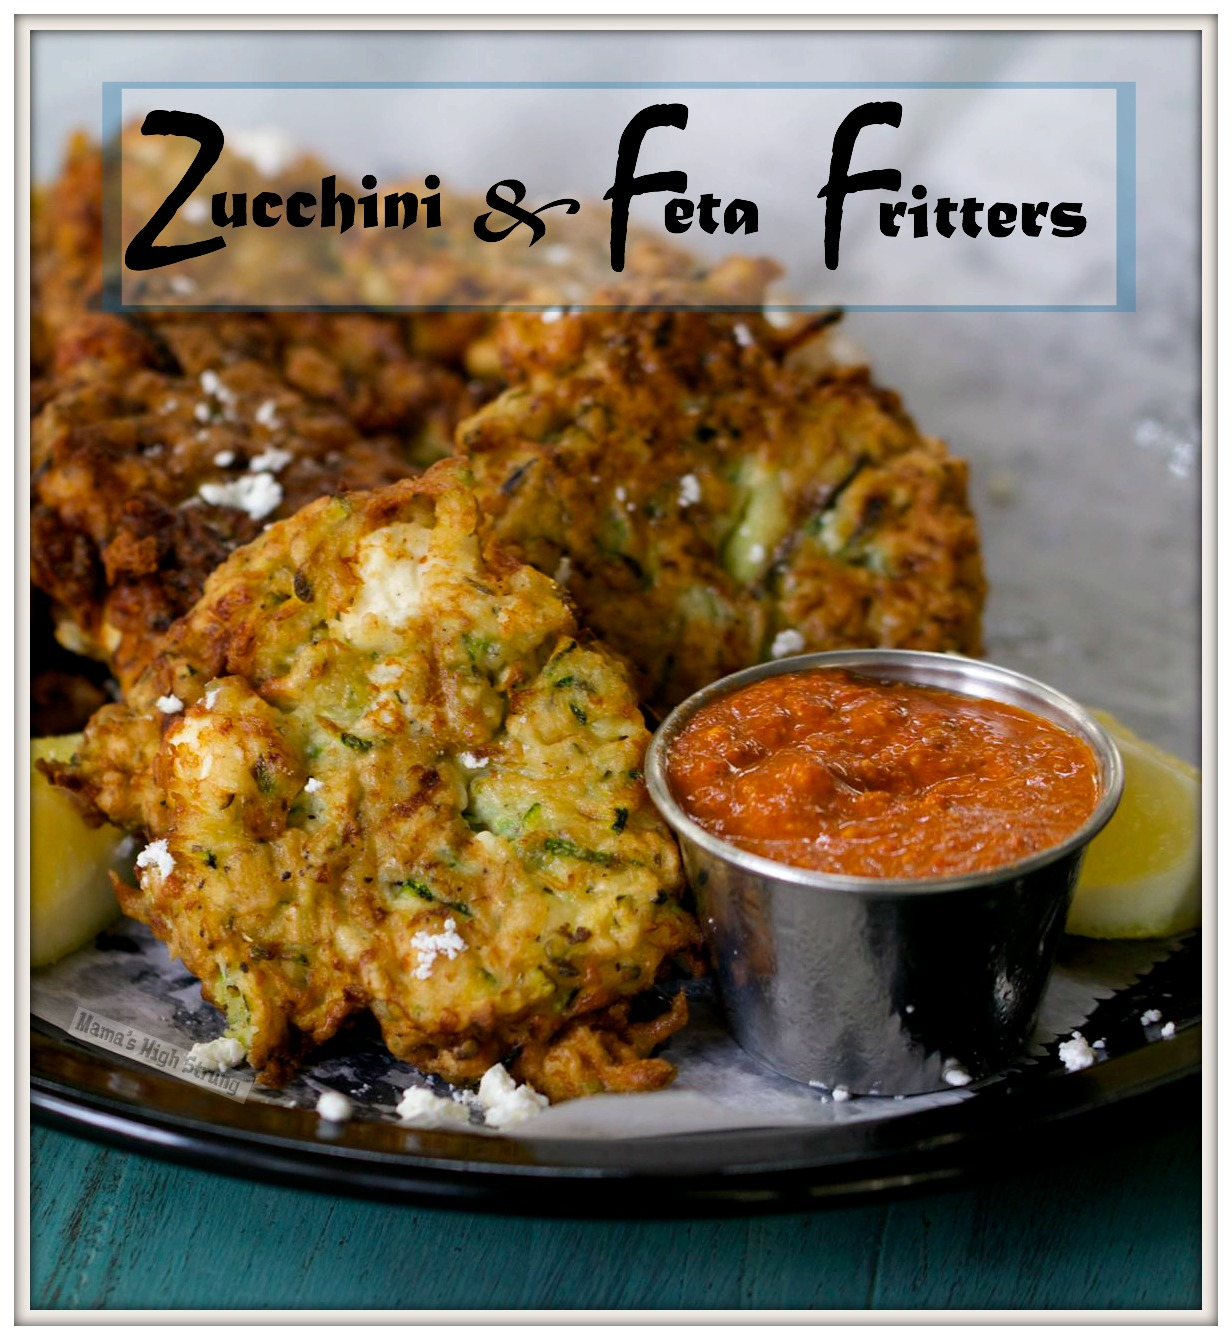 Zucchini and Feta Fritters with Roasted Red Pepper Dip